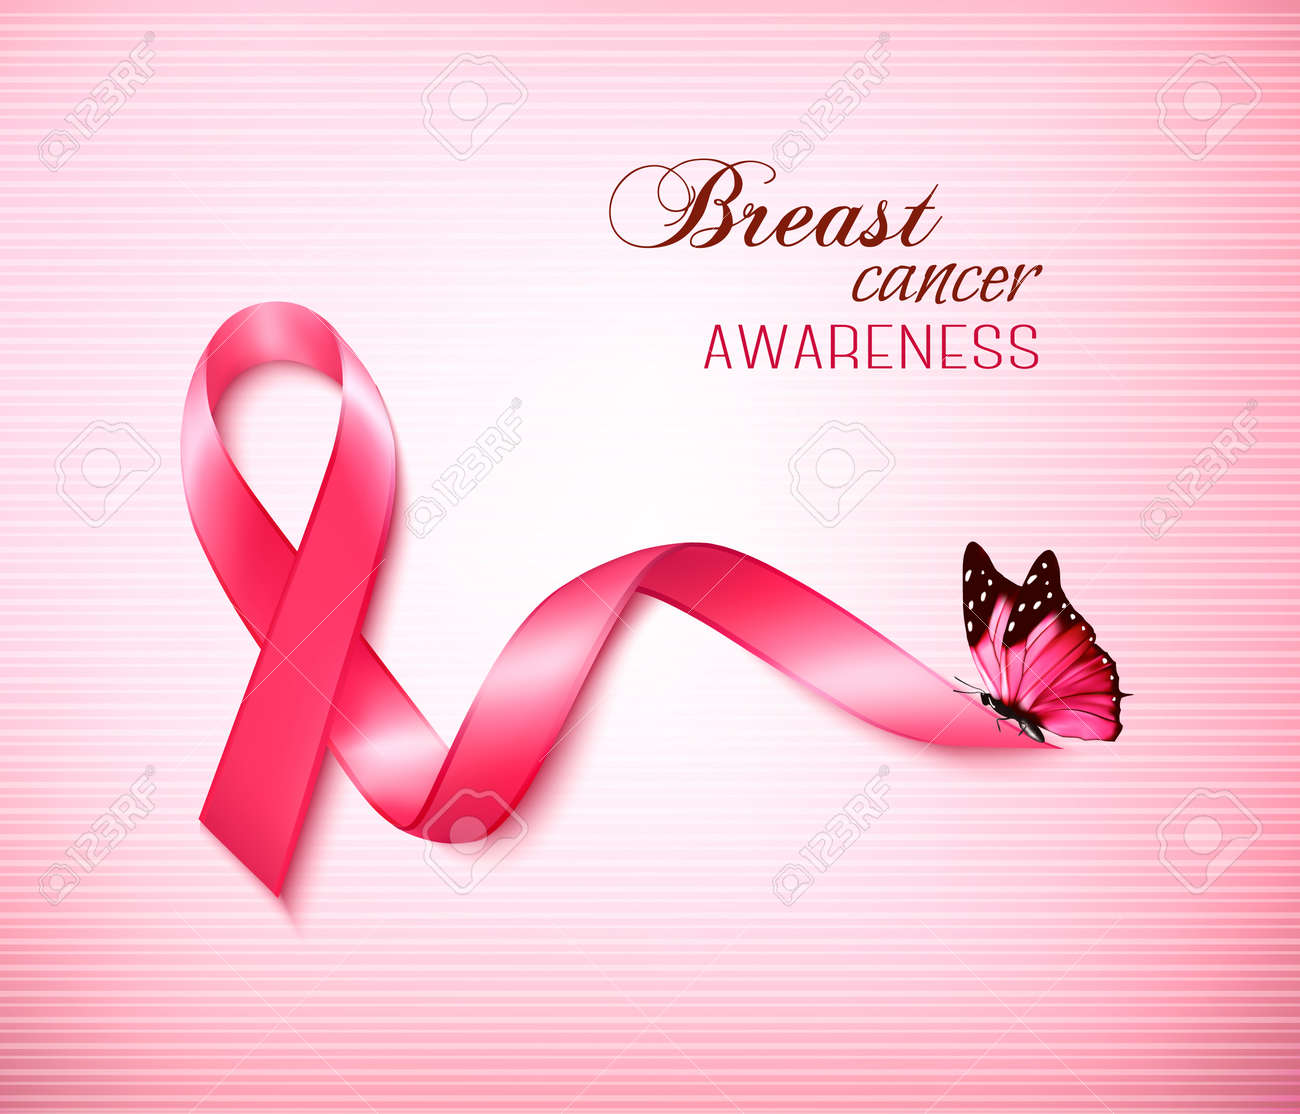 11 757 breast cancer cliparts stock vector and royalty free